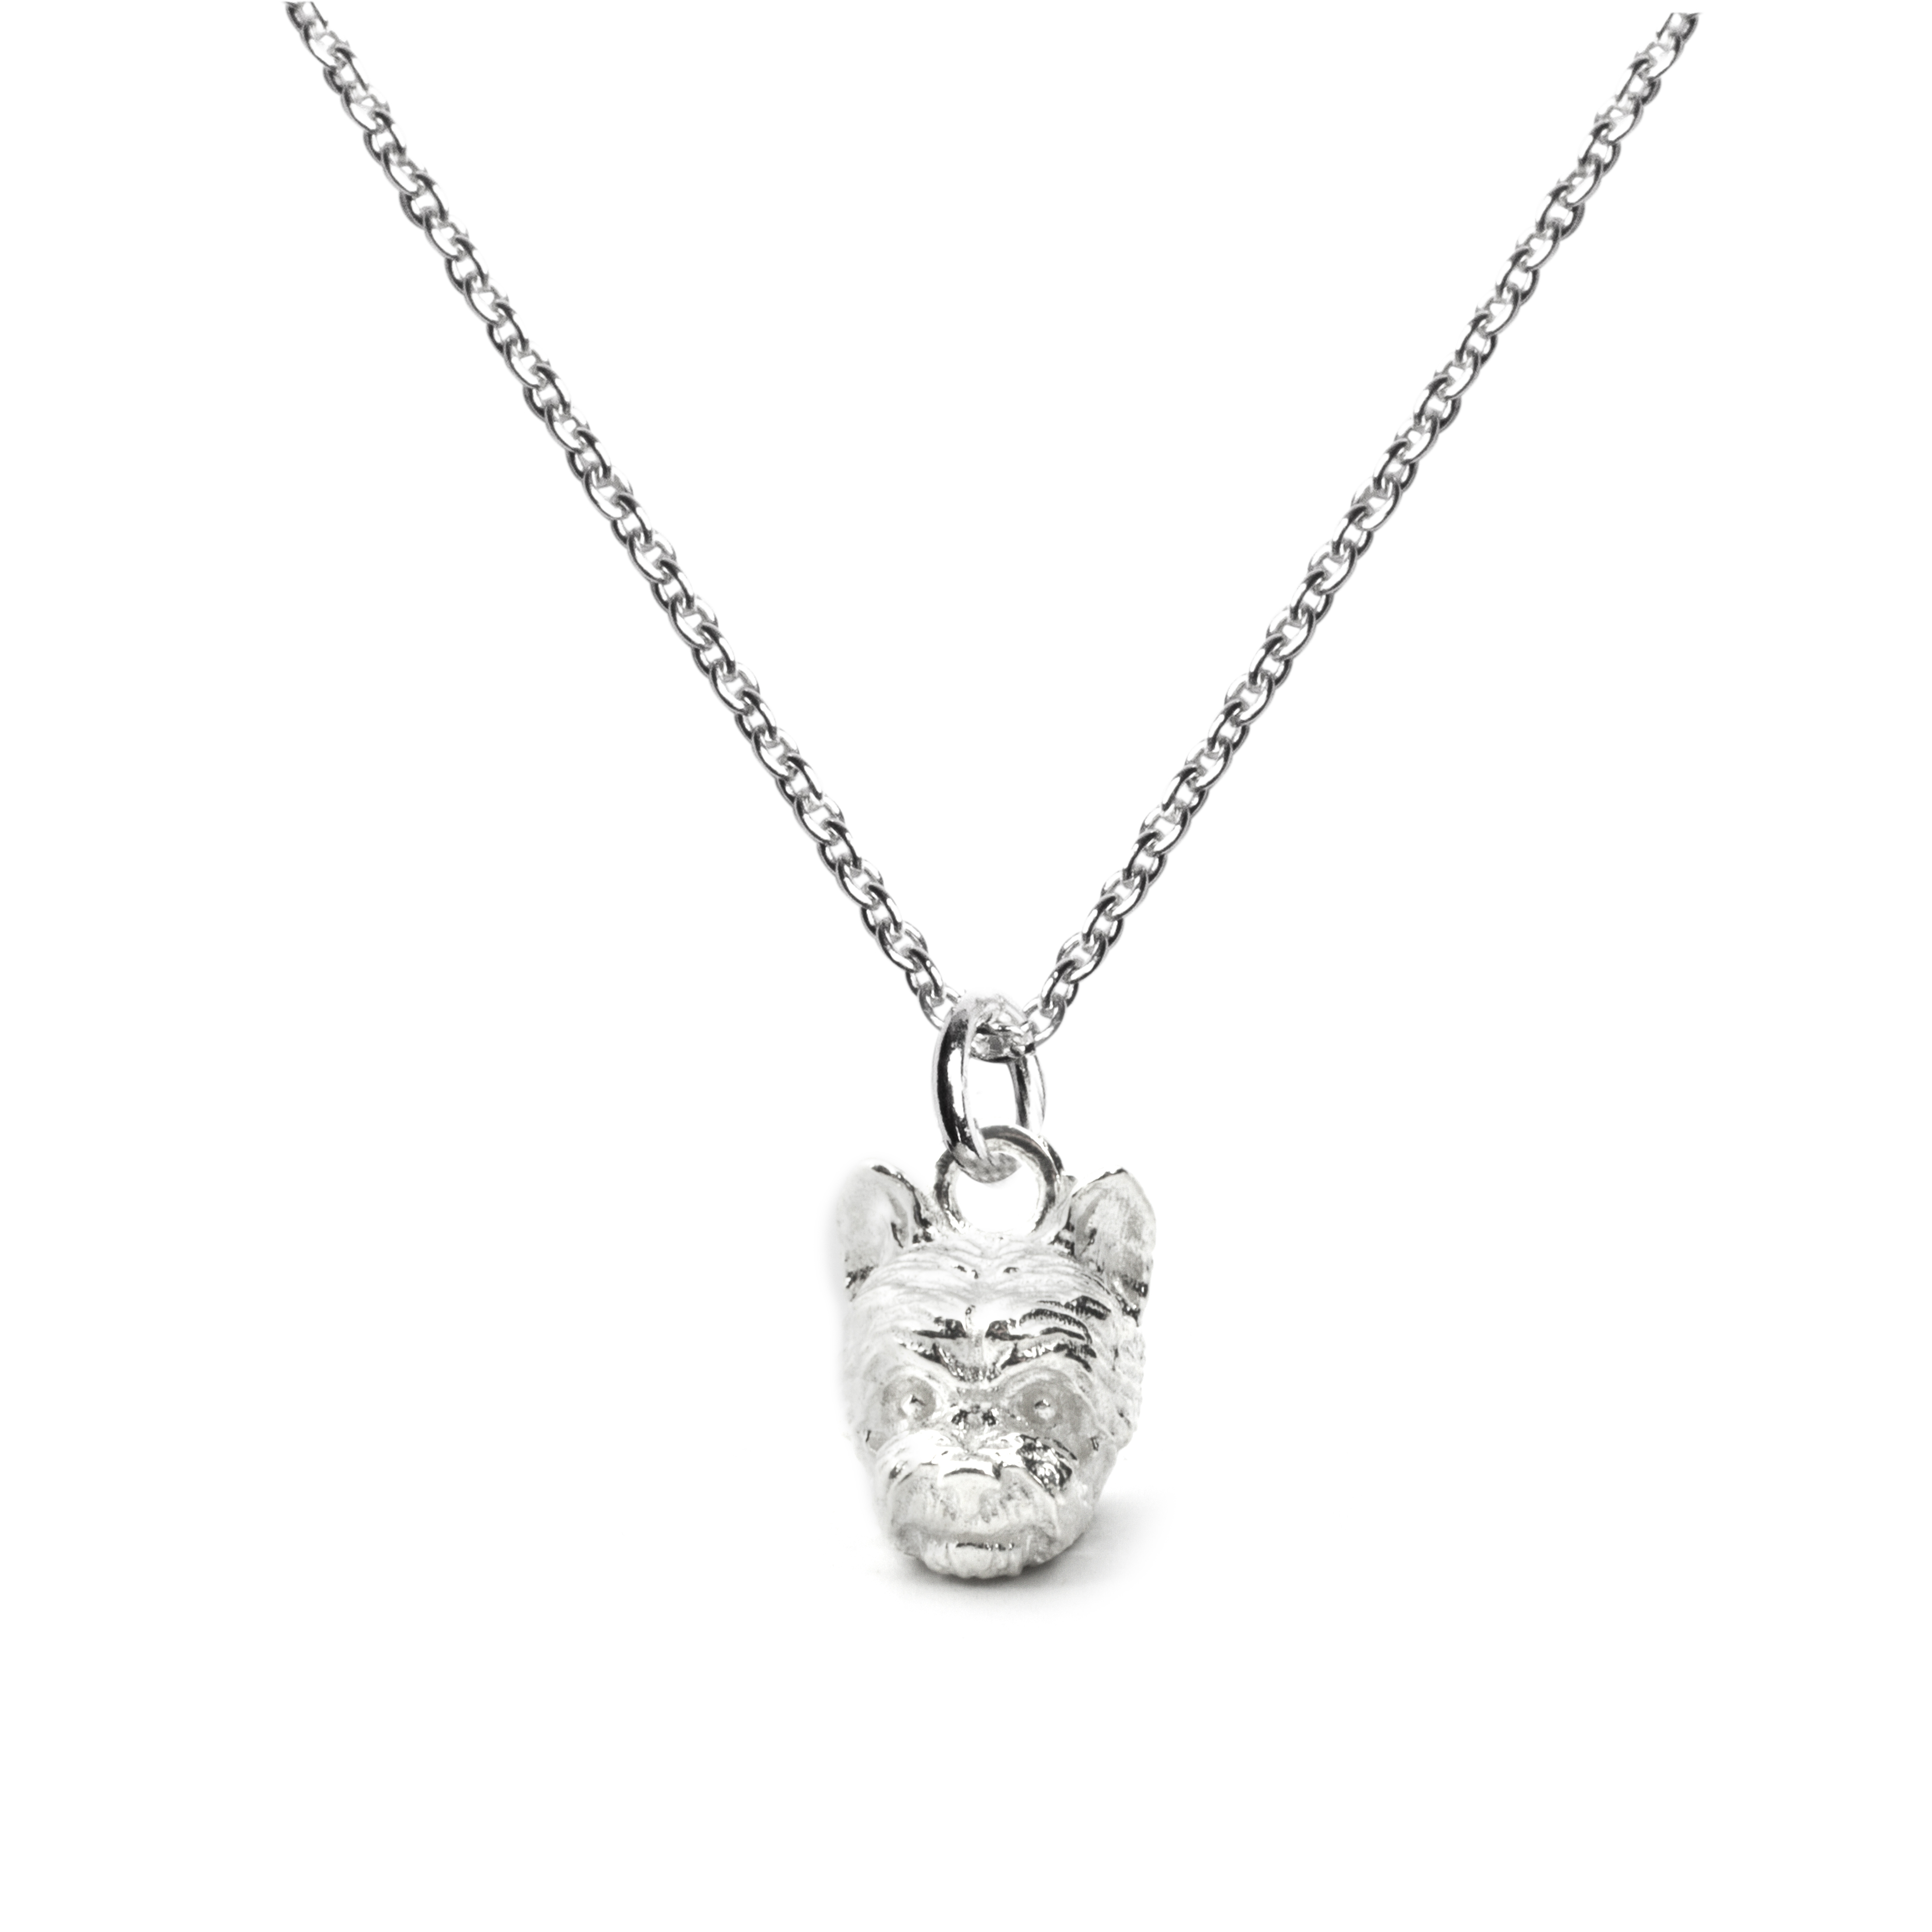 Yorkshire_Head Pendant_silver_HIGH